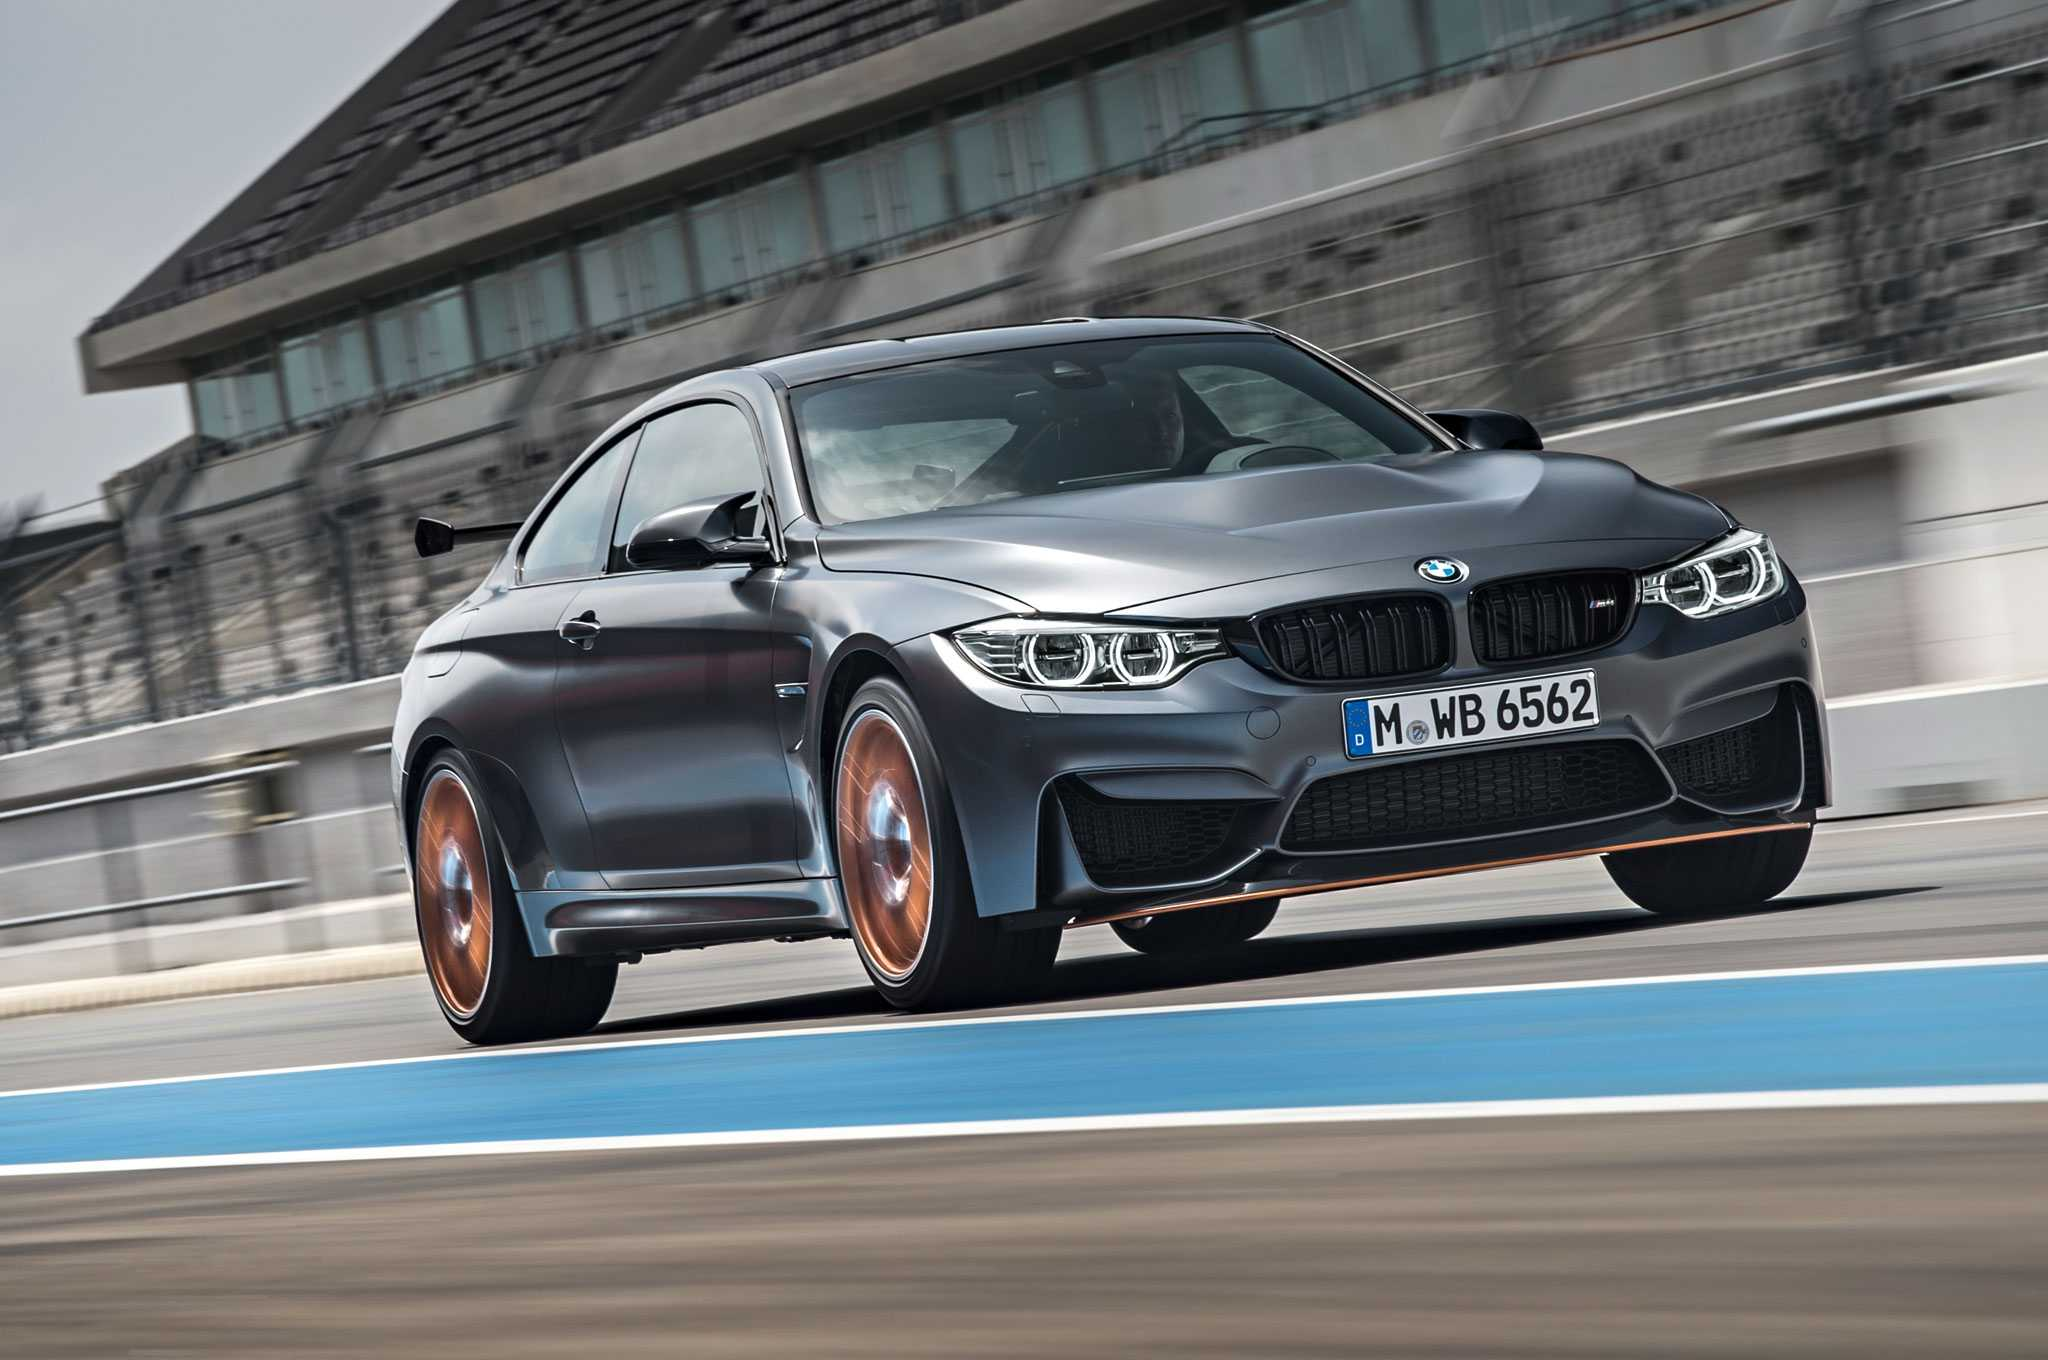 BMW M4 GT To Usher In Water Injection Technology By 2019